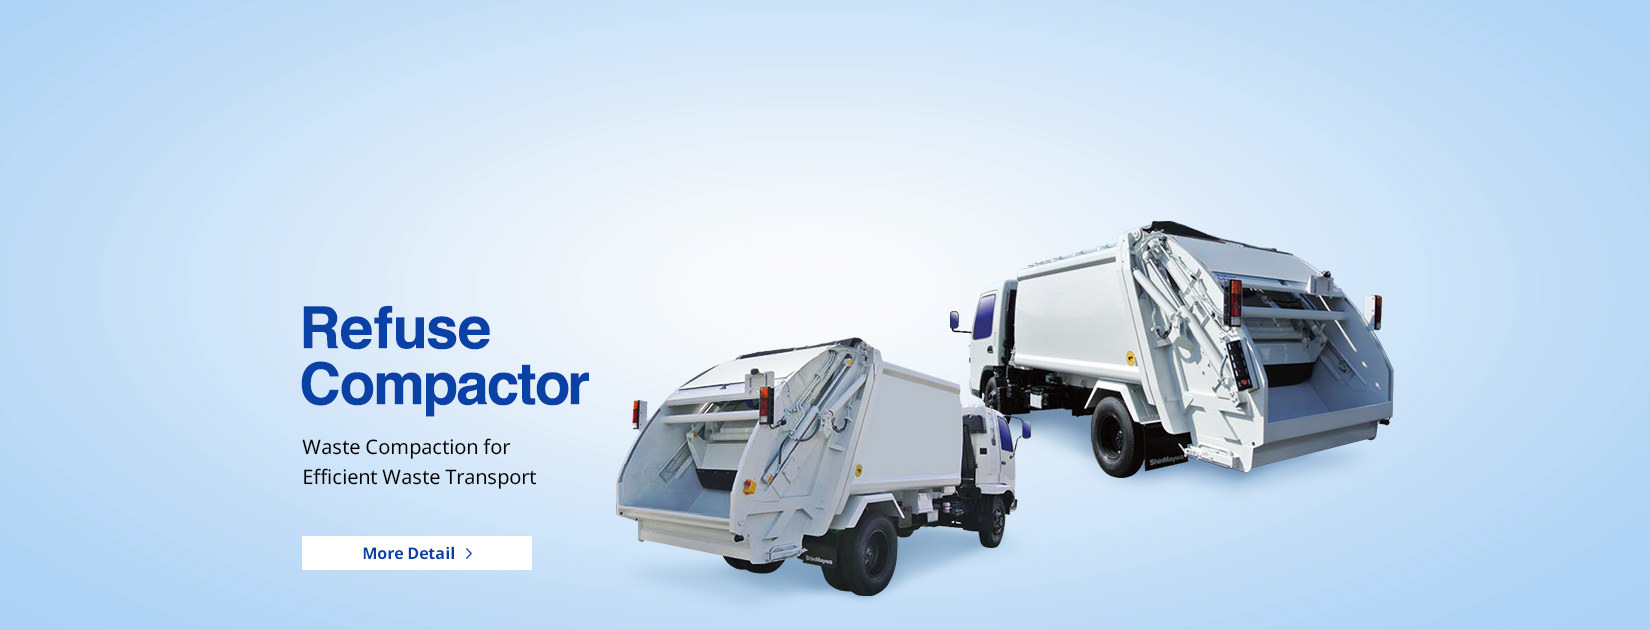 Refuse Compactor Waste Compaction for Efficient Waste Transport